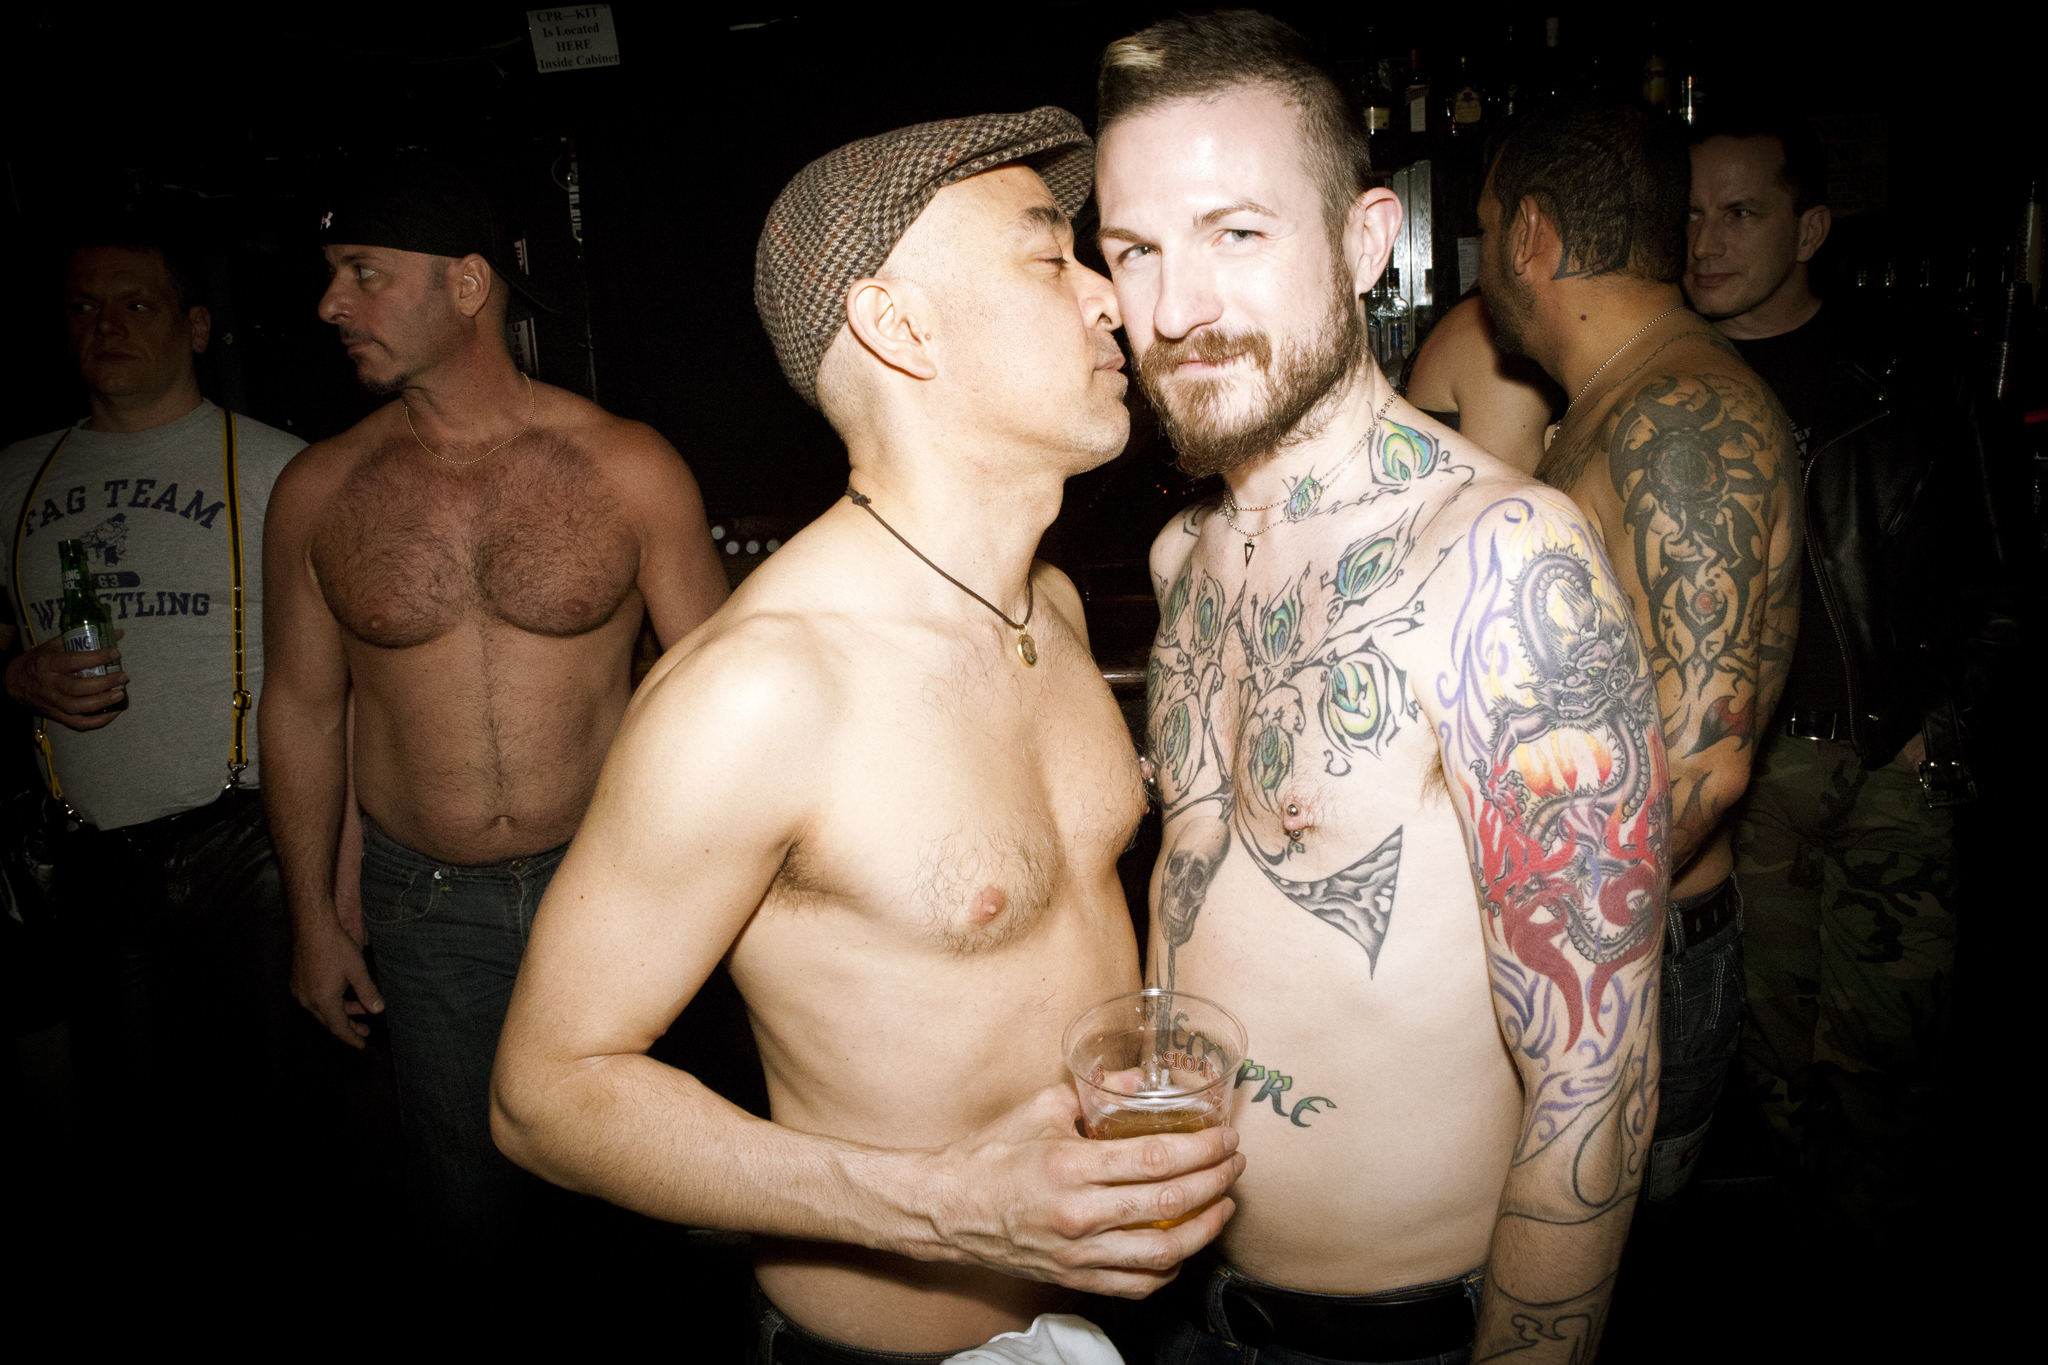 Gay club nights and parties in NYC